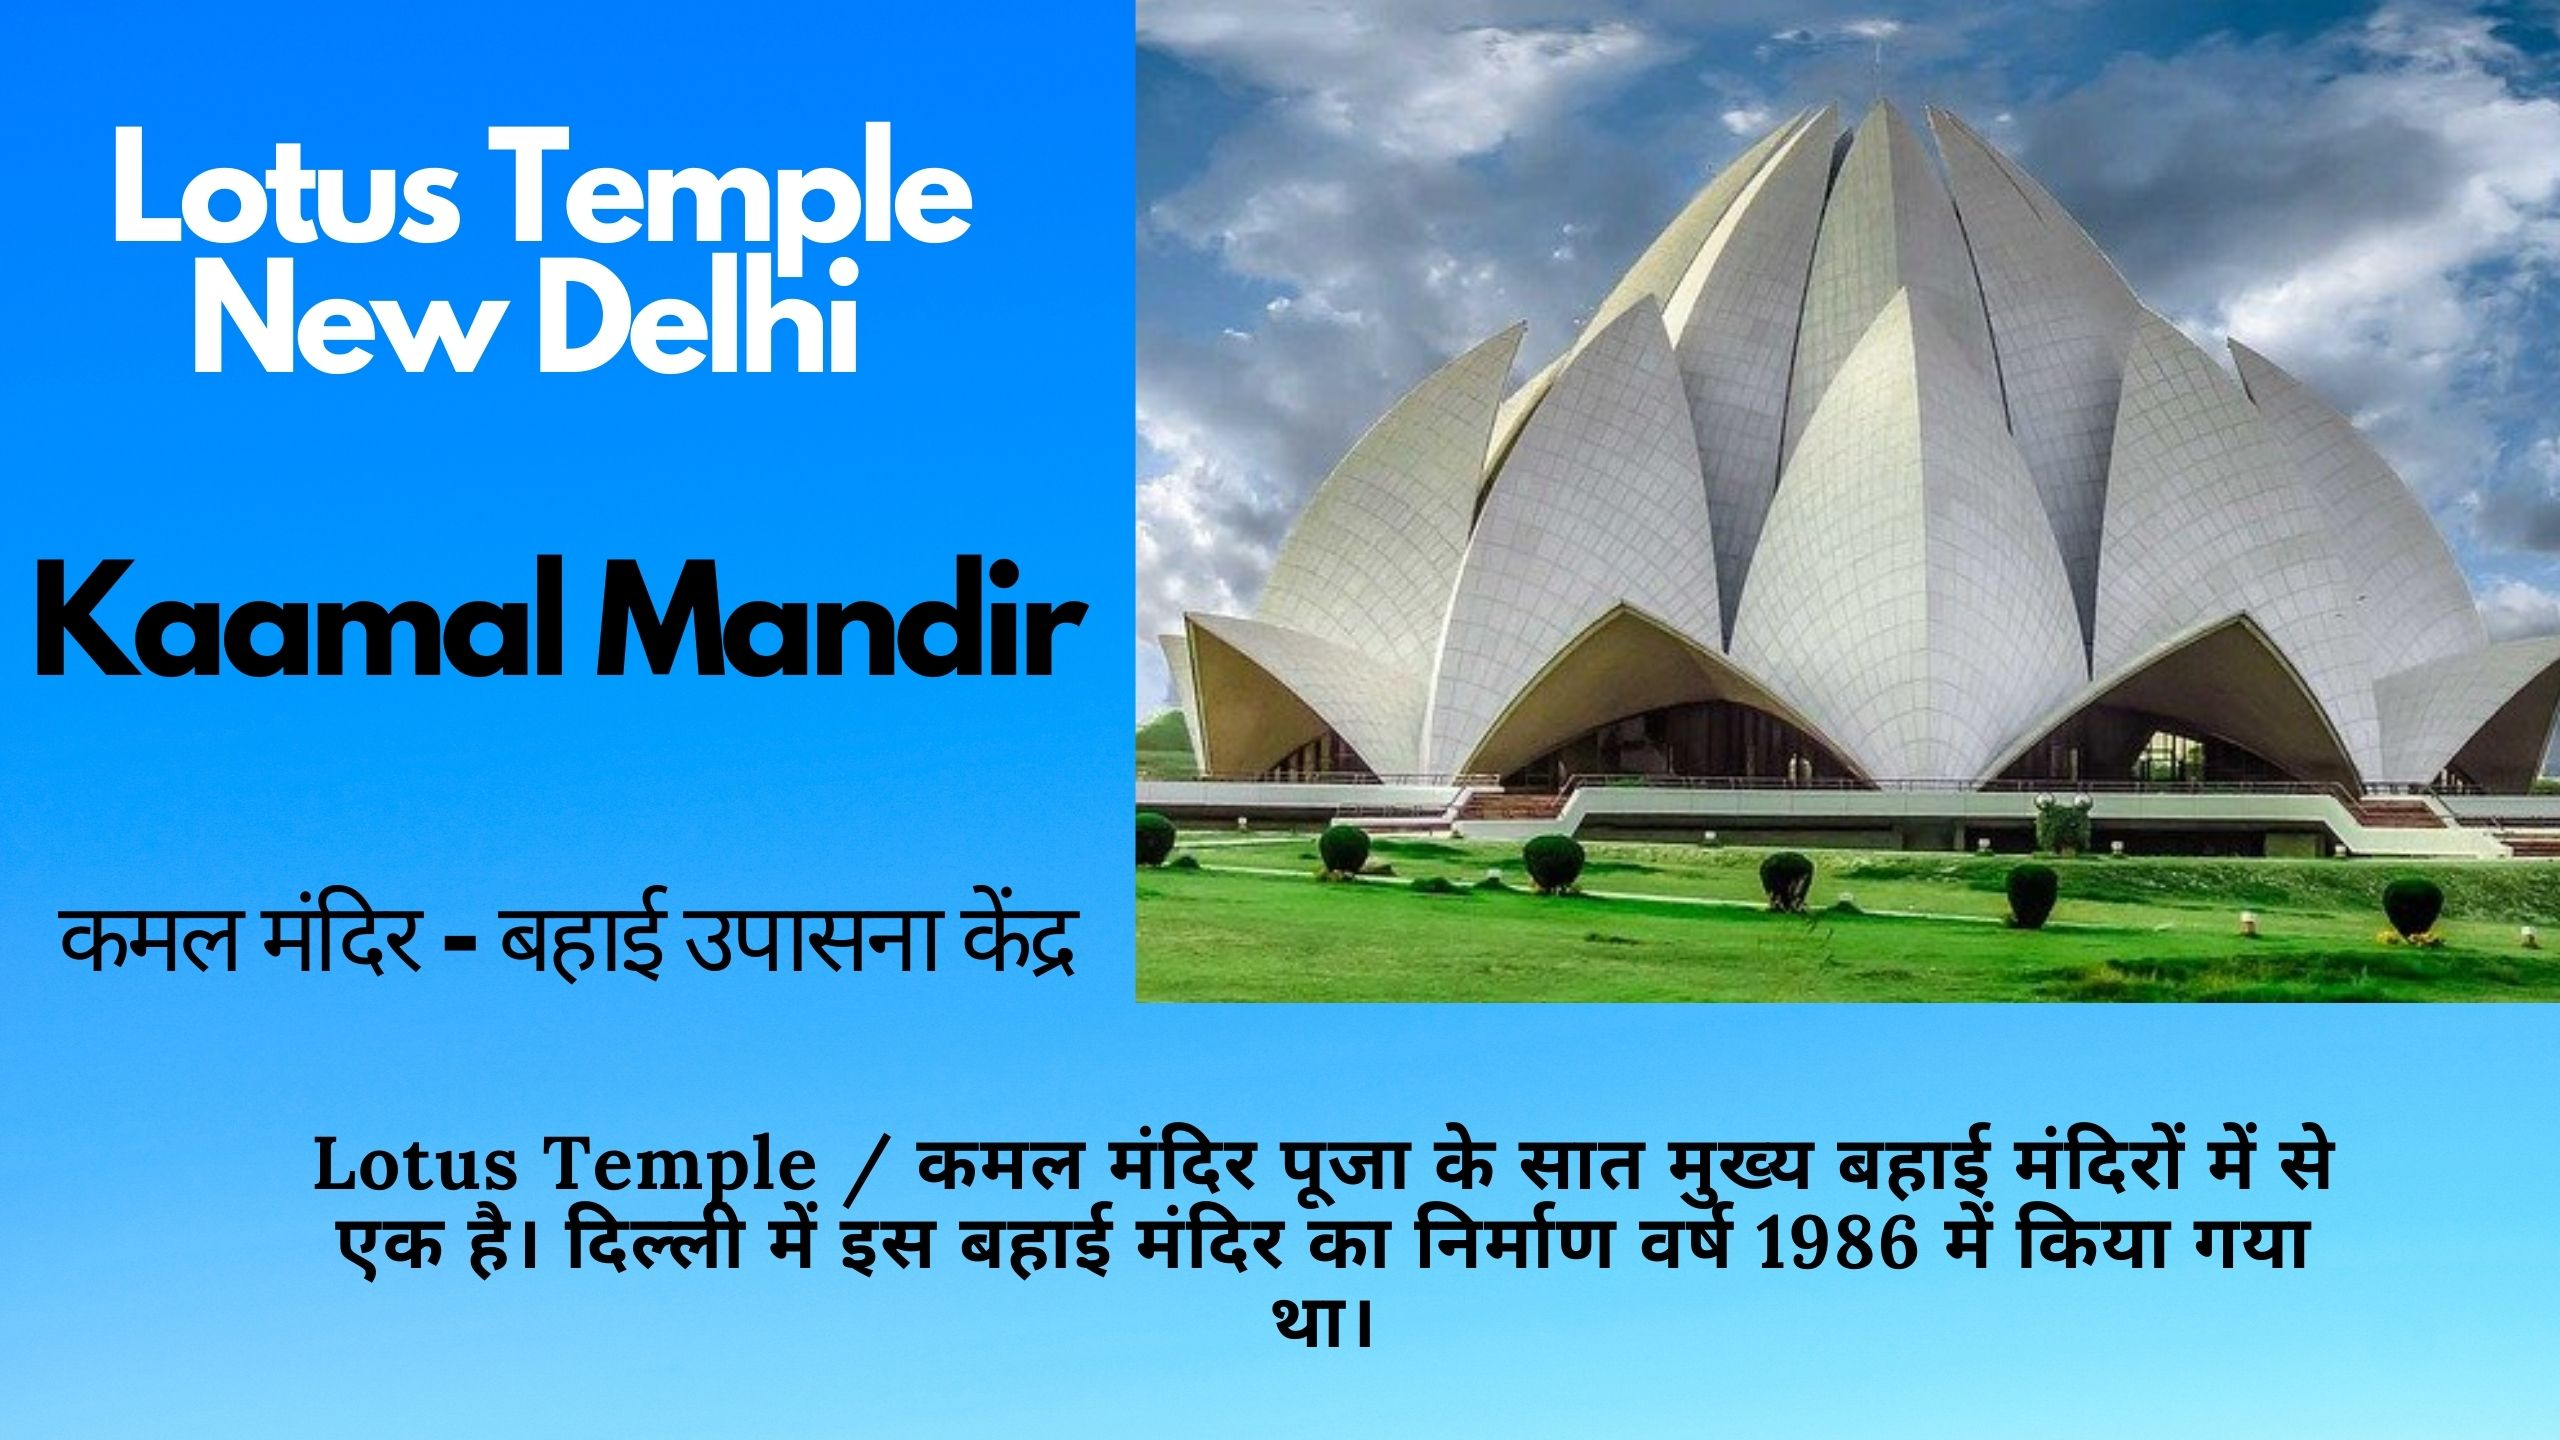 Lotus temple - Kamal Mandir